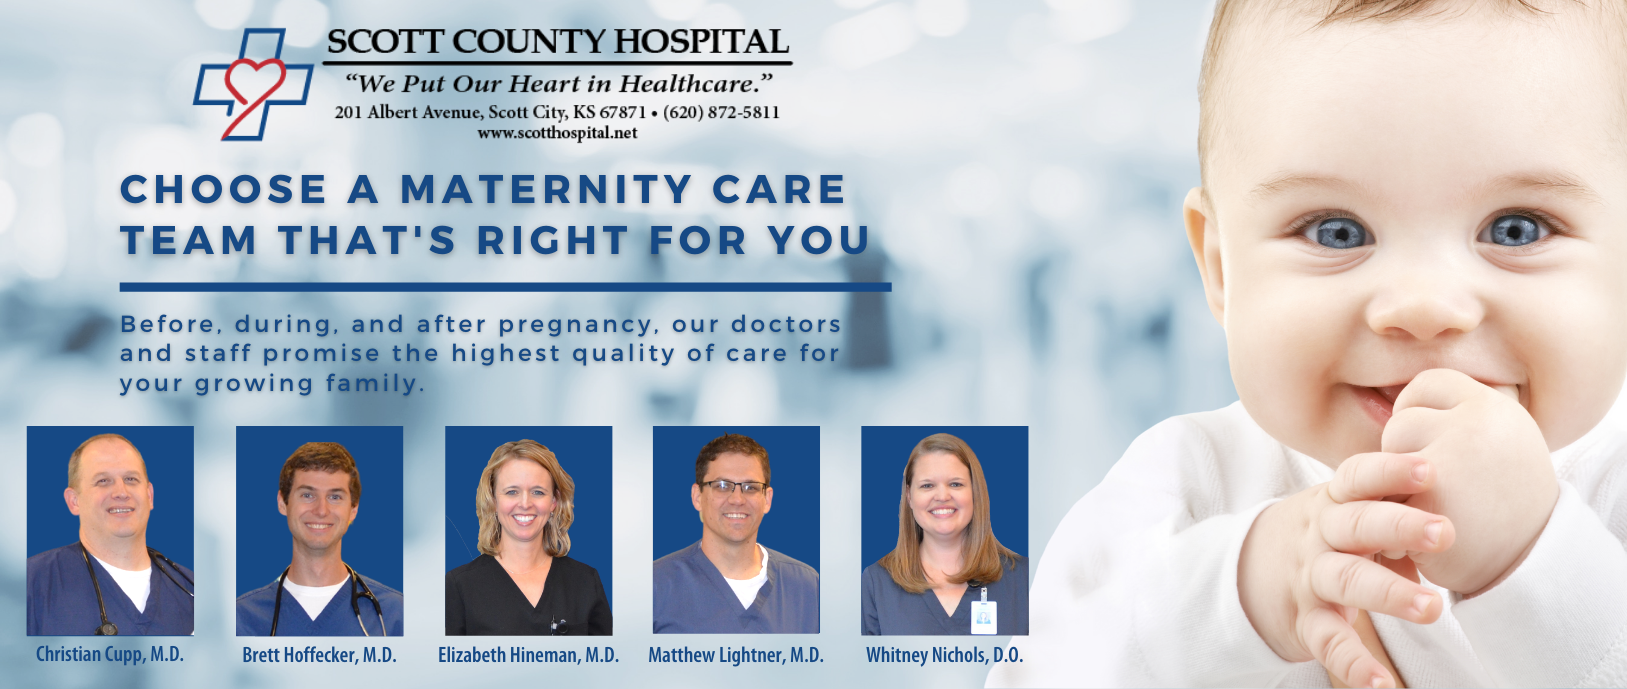 Choose a maternity care team that's right for you.